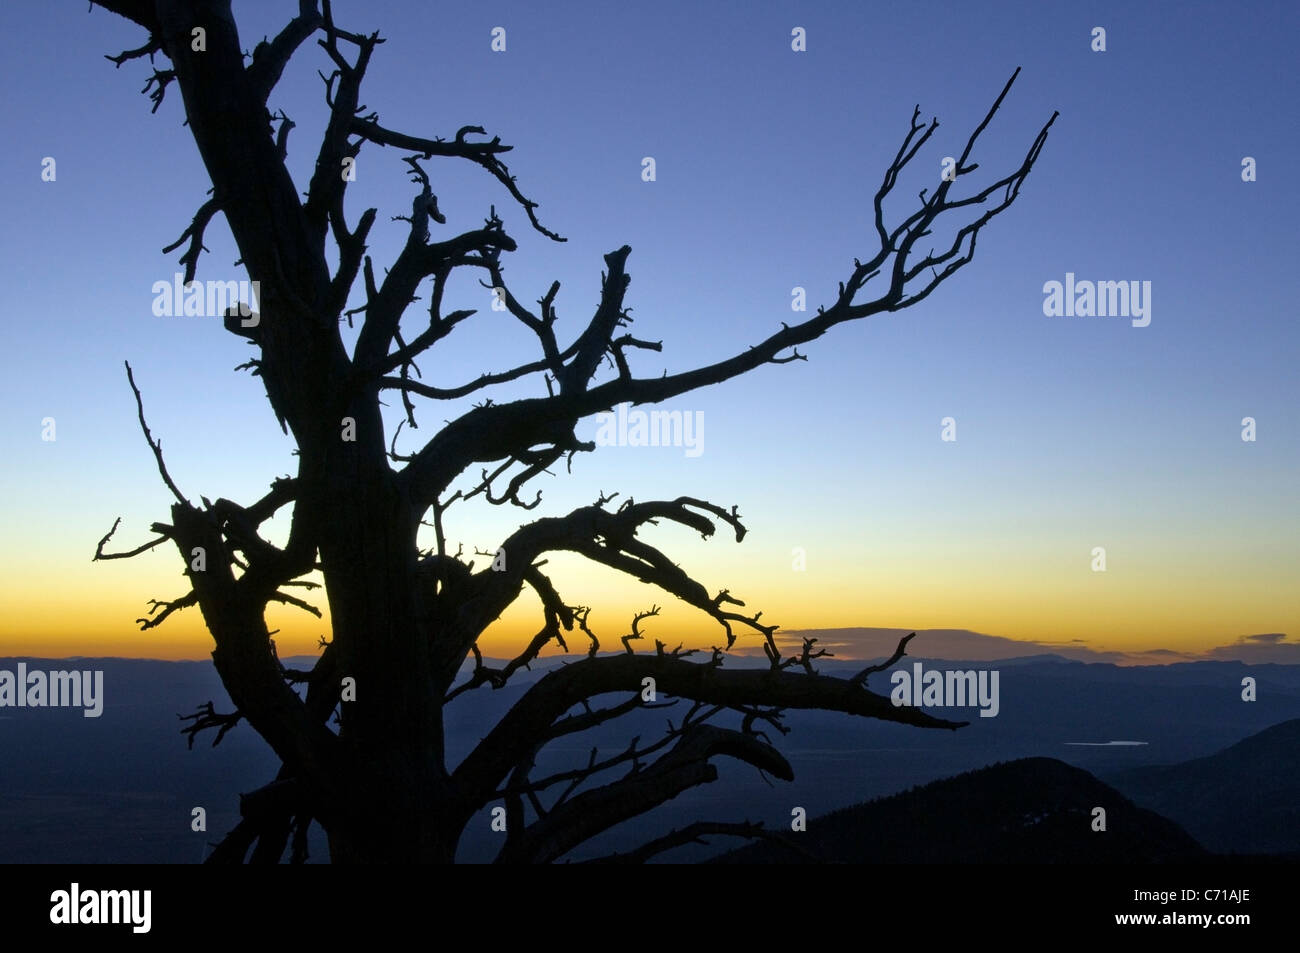 A silhouette of a tree at sunrise in Great Basin National Park, NV. - Stock Image